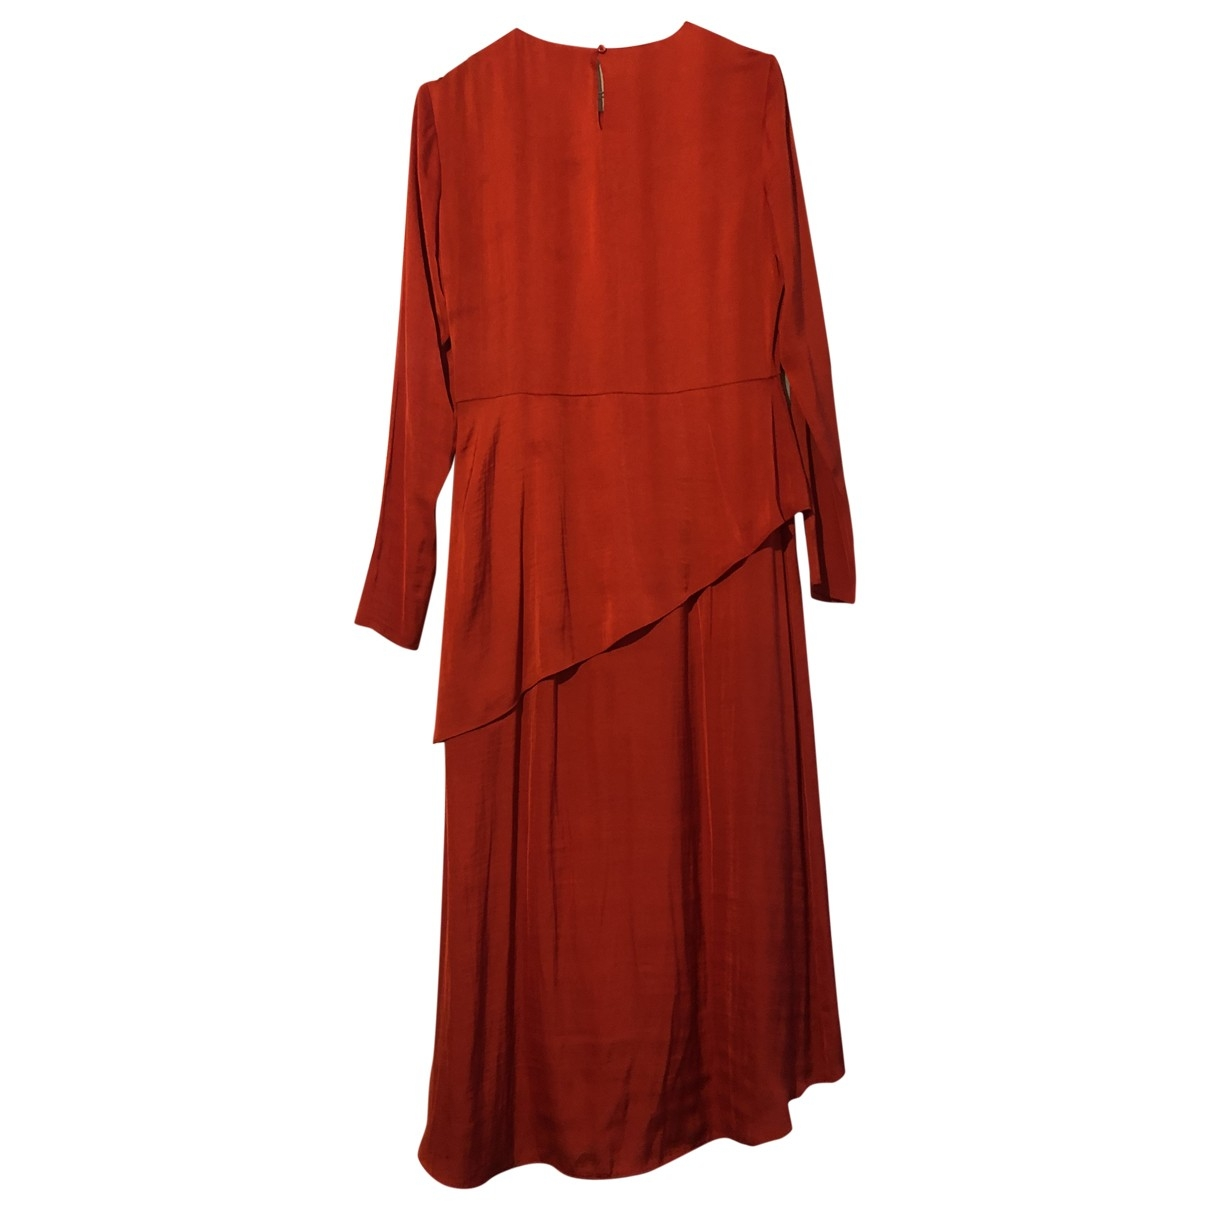 Maje \N Red dress for Women 38 FR